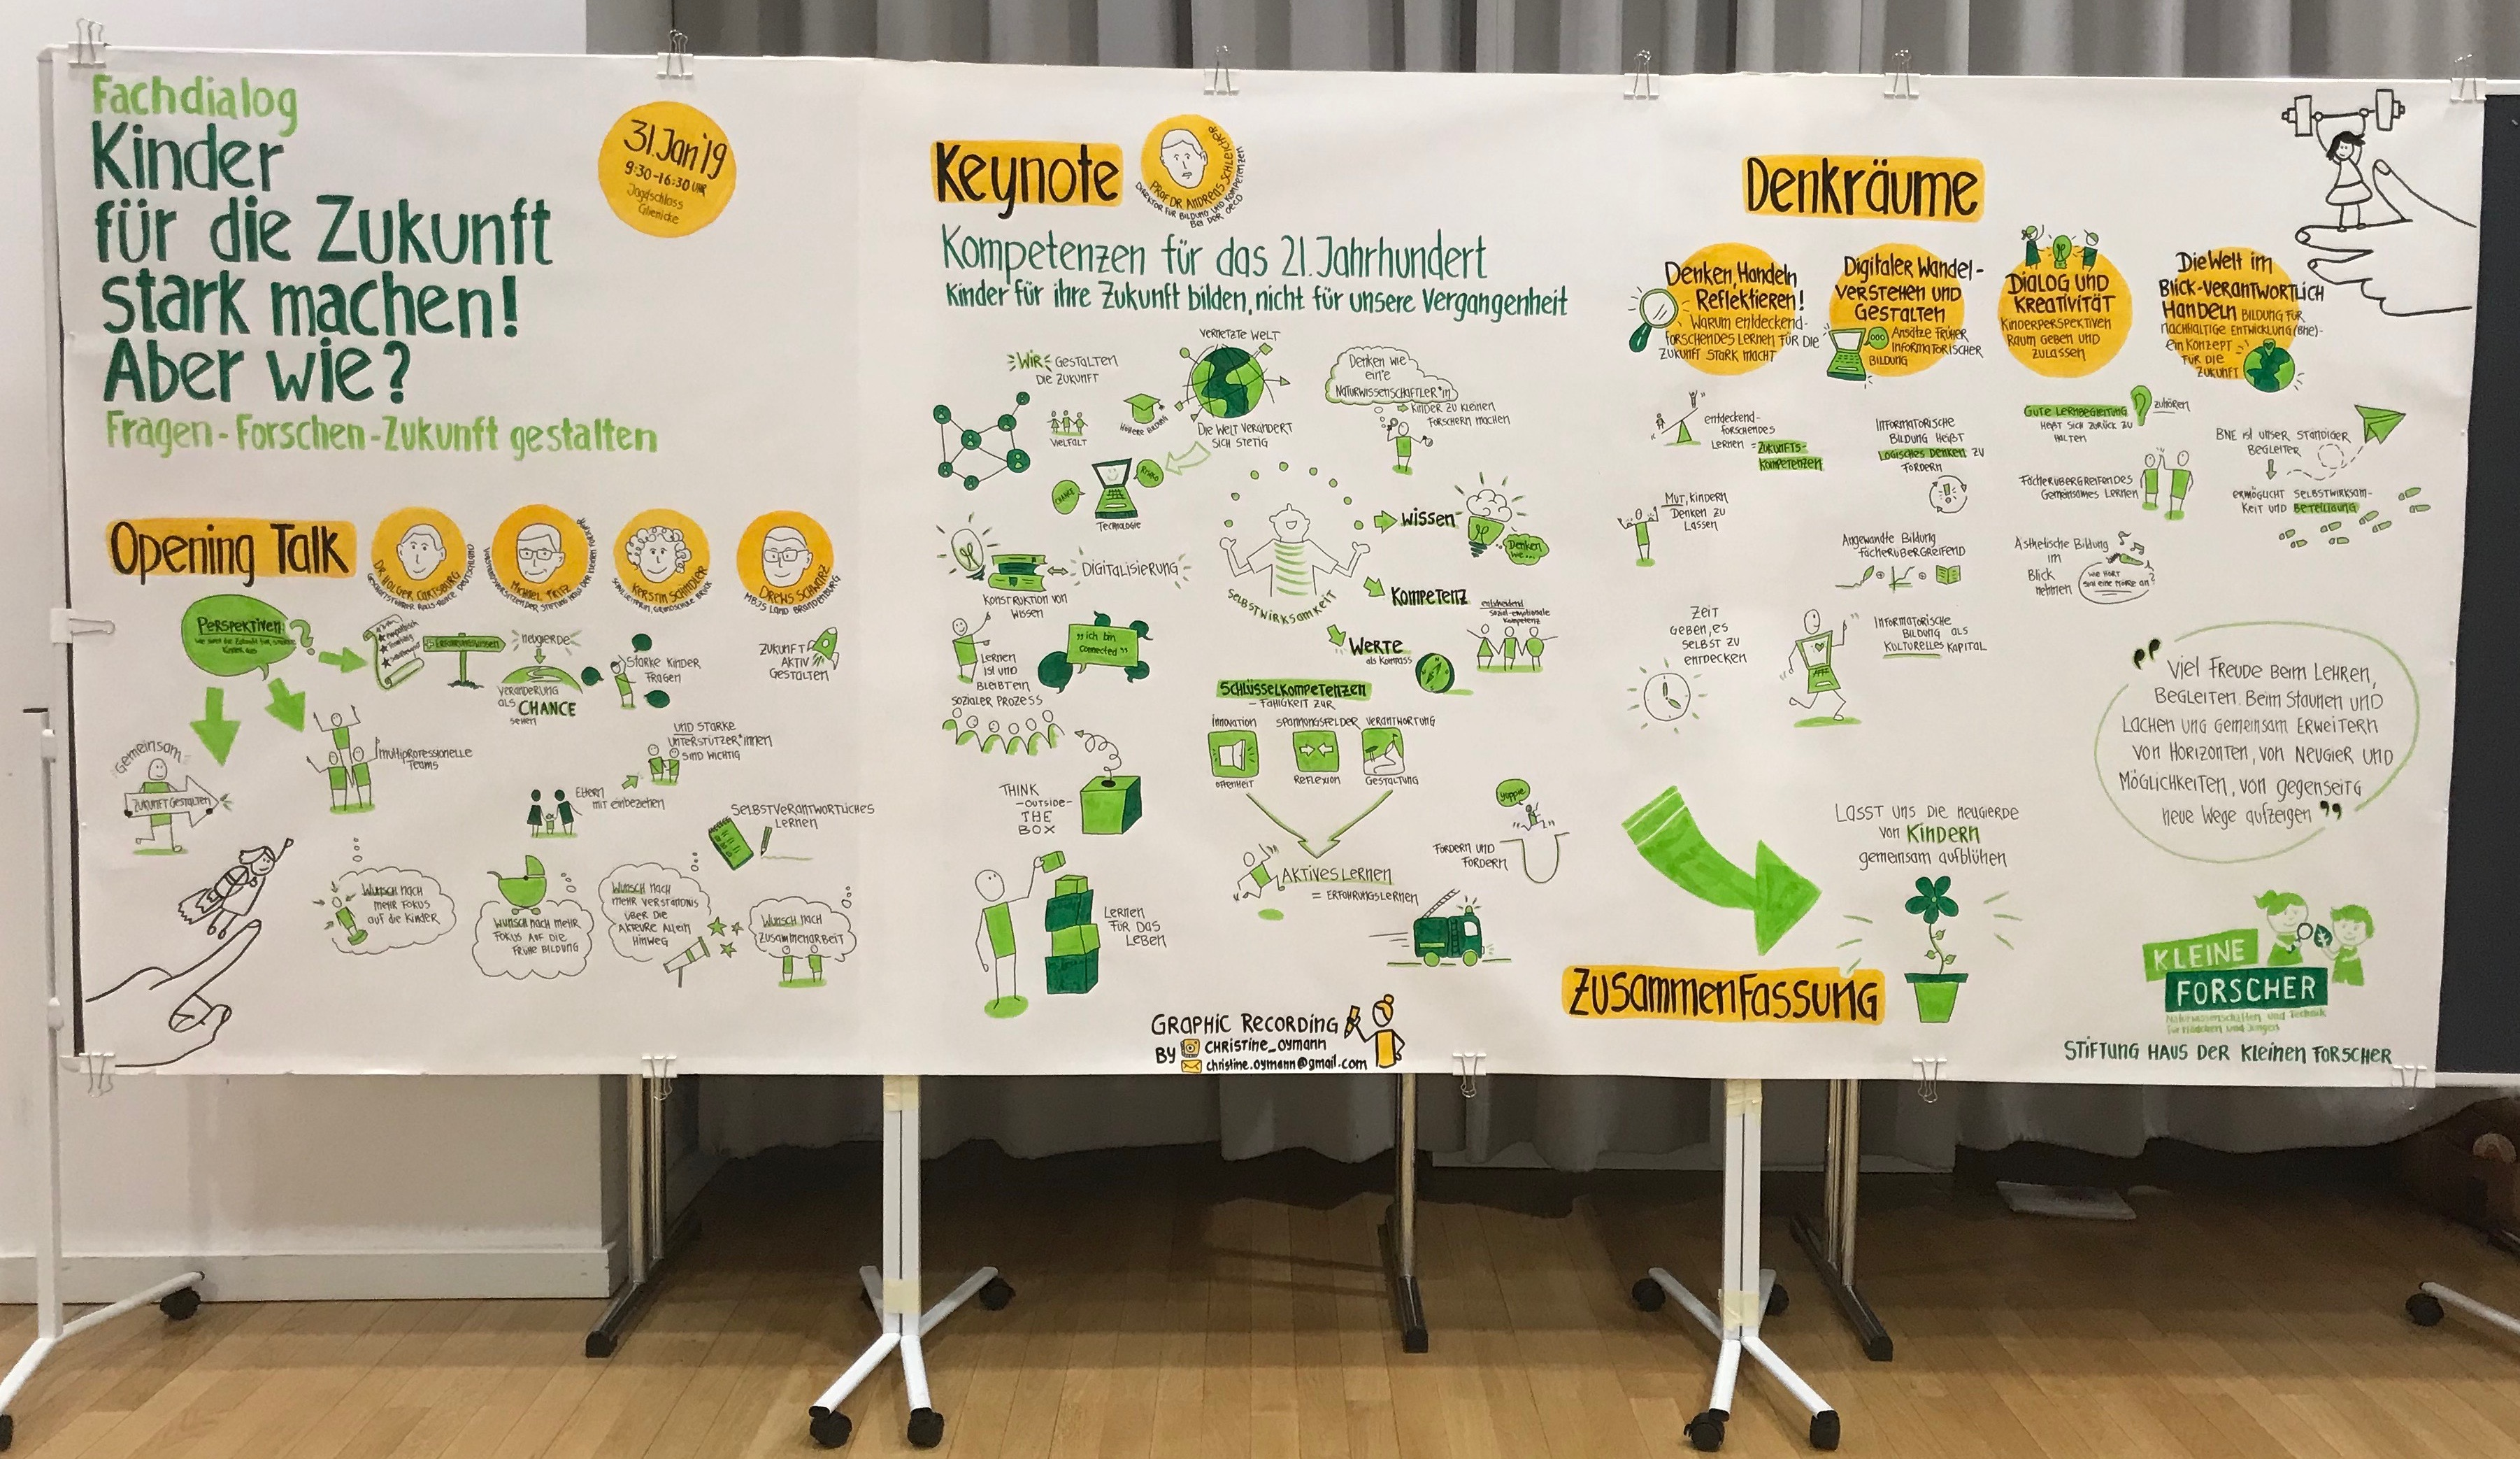 Christine Oymann – Graphic recording, Workshops, Visual Facilitator